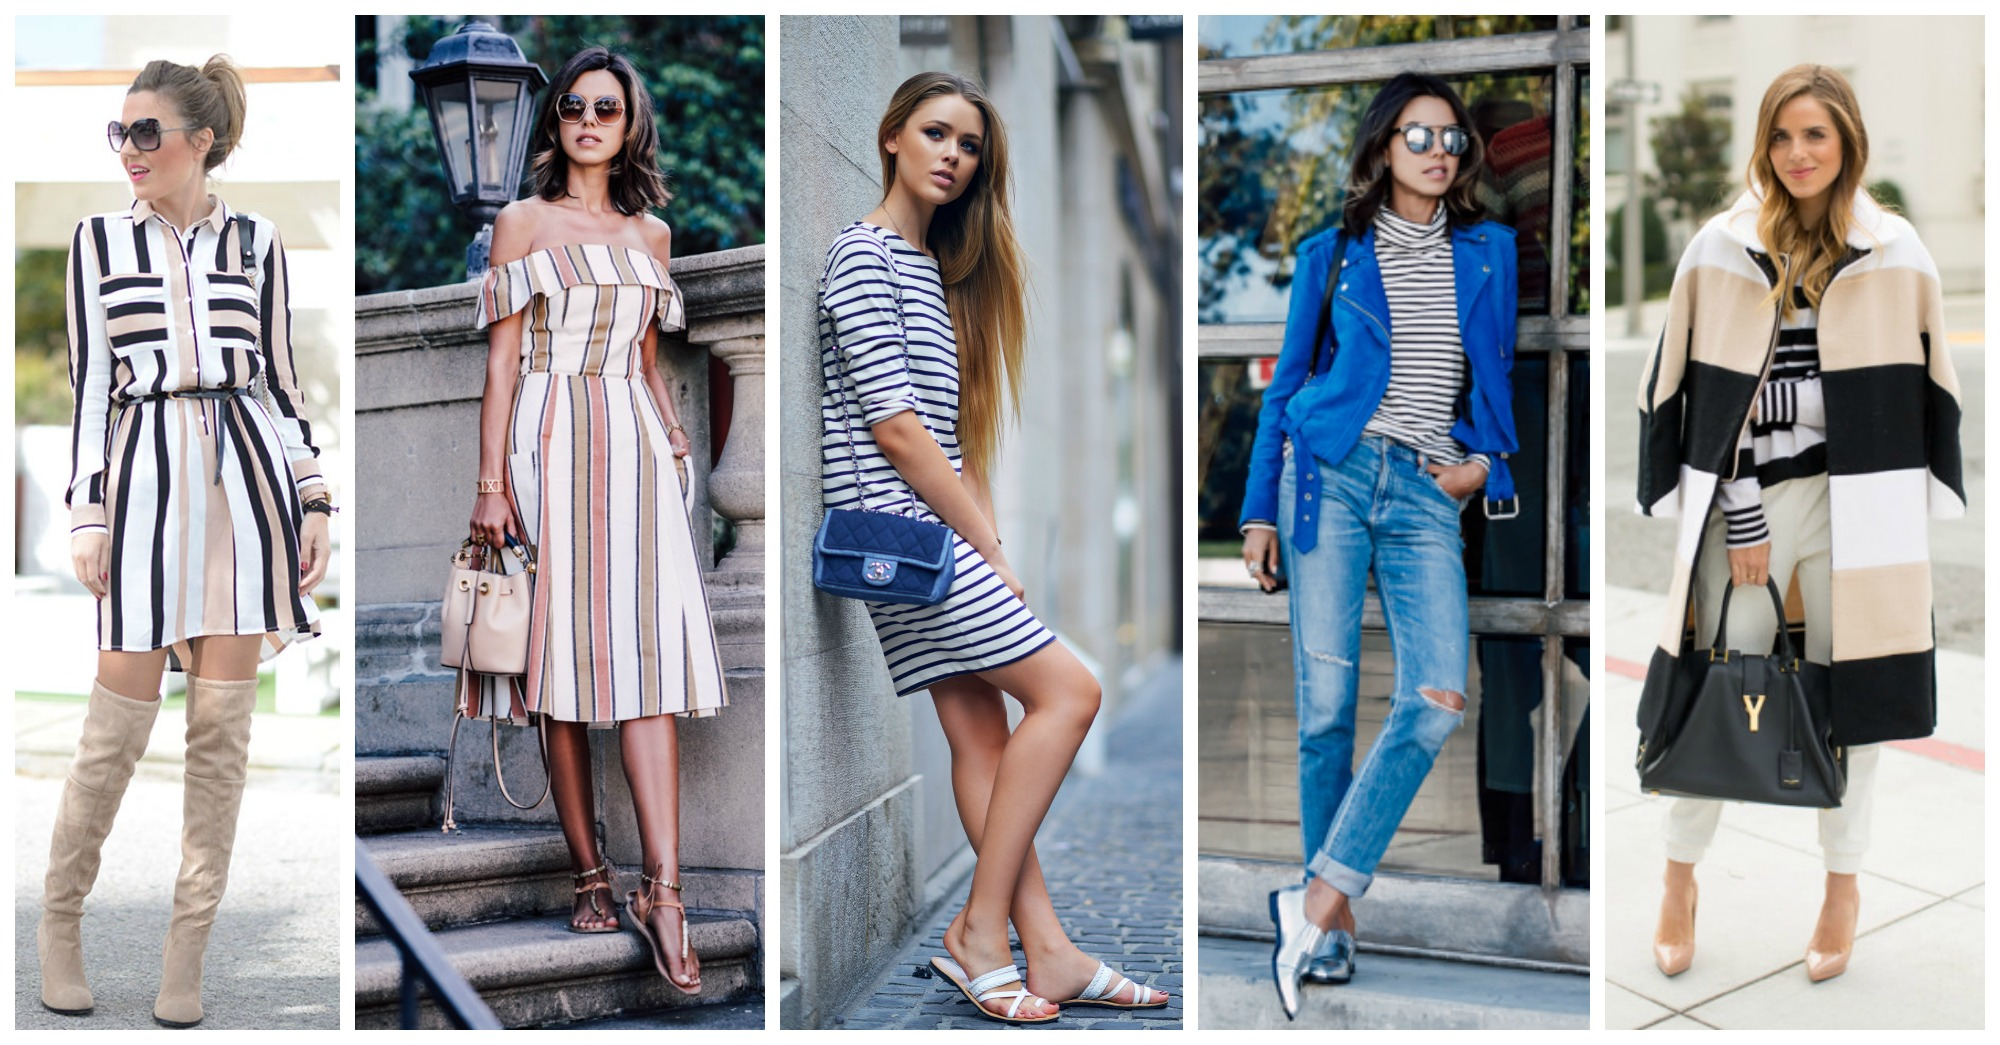 Stripes Are IN – 15 Stylish Ways to Follow This Trend